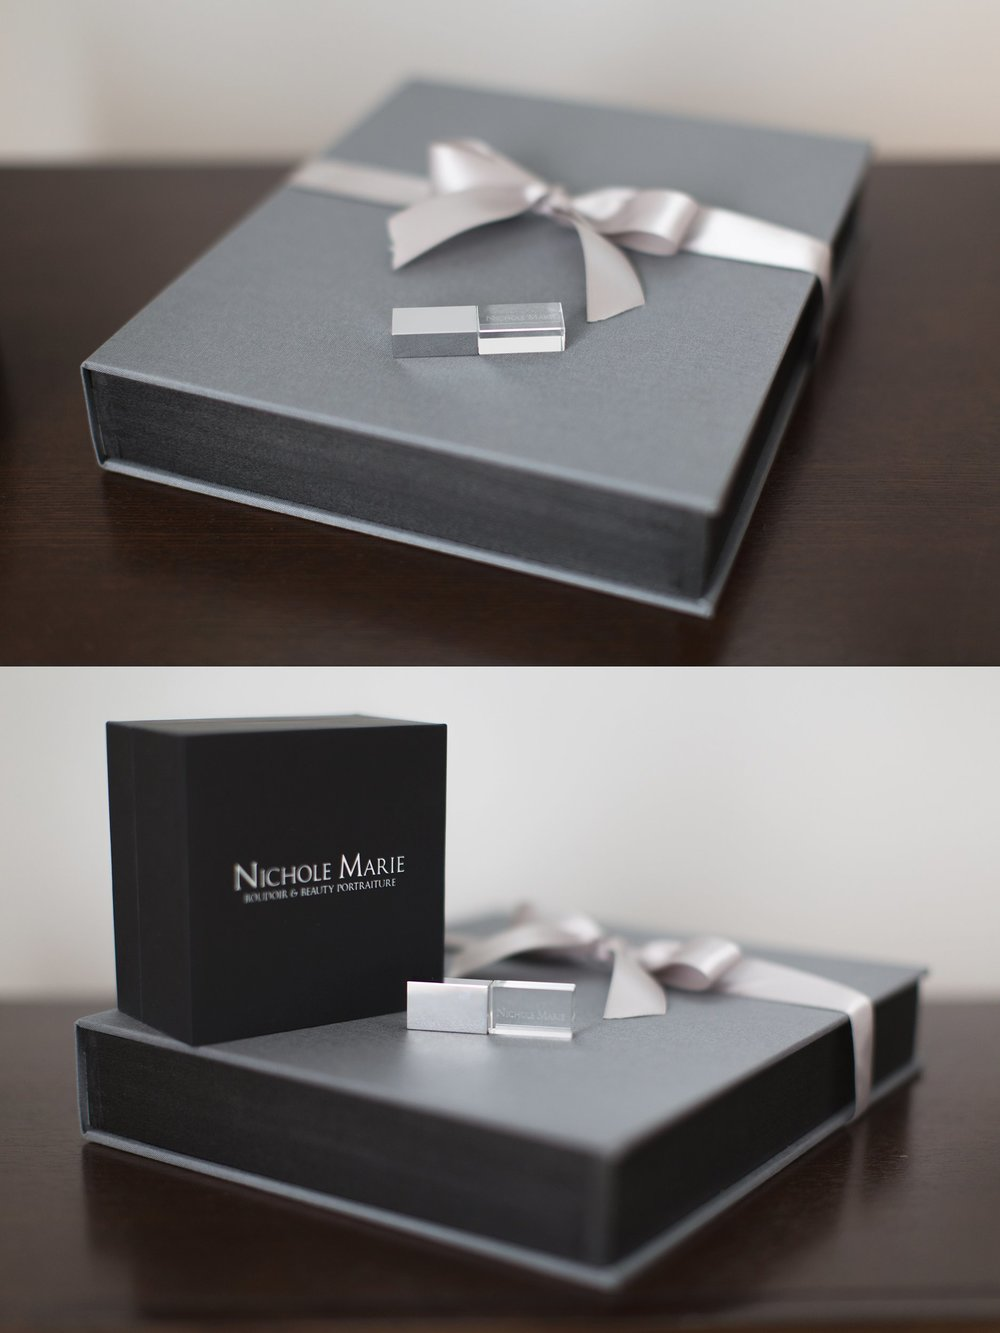 IMAGE BOX AND DIGITAL GIFT SET | SEBASTIAN FLORIDA PHOTOGRAPHER